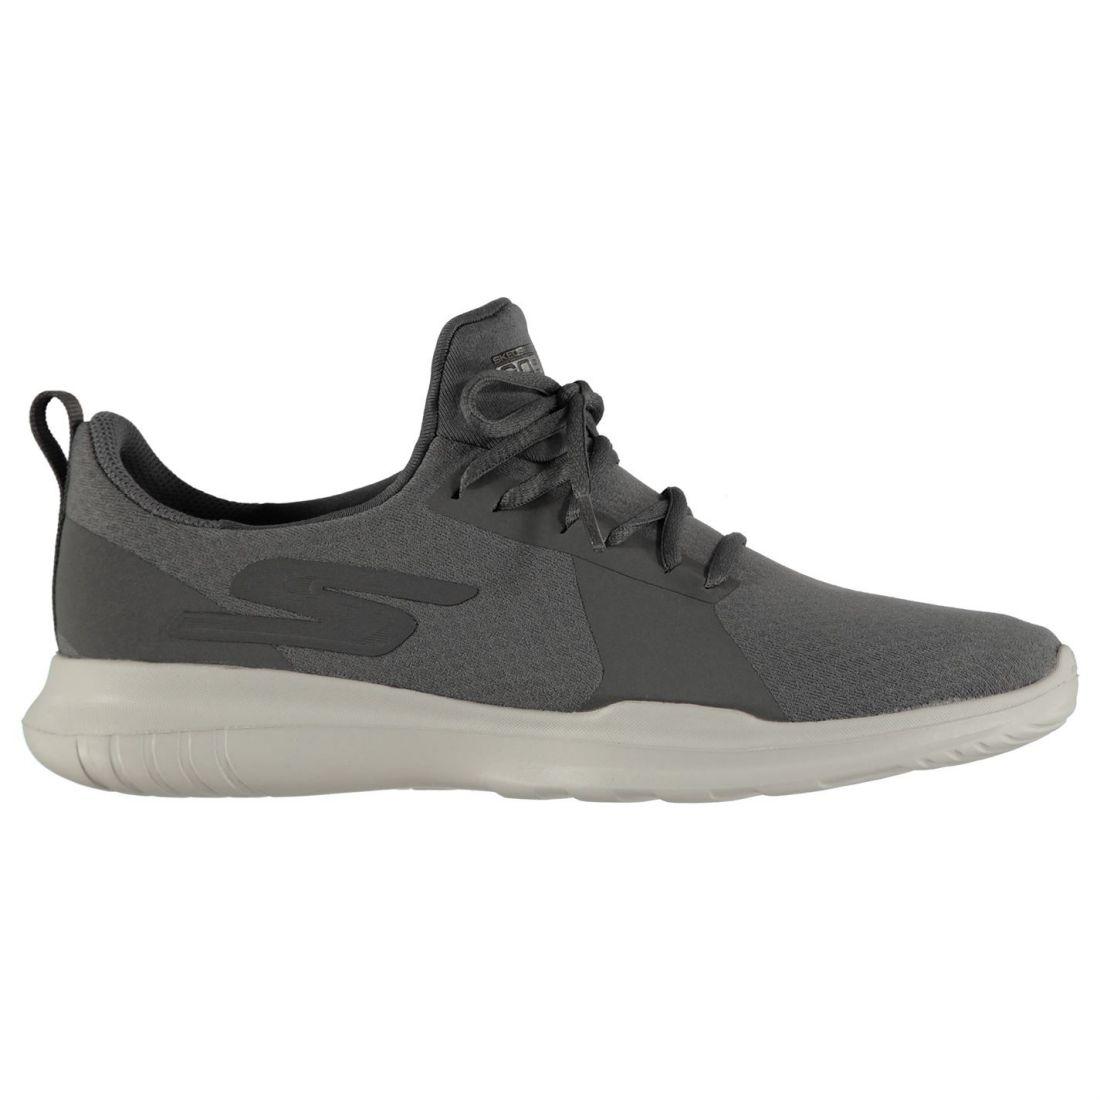 Sneakers Laces Ladies Run Go Ventilated Mojo Charcoal Shoes Fastened Skechers Everyday tqfPwwp